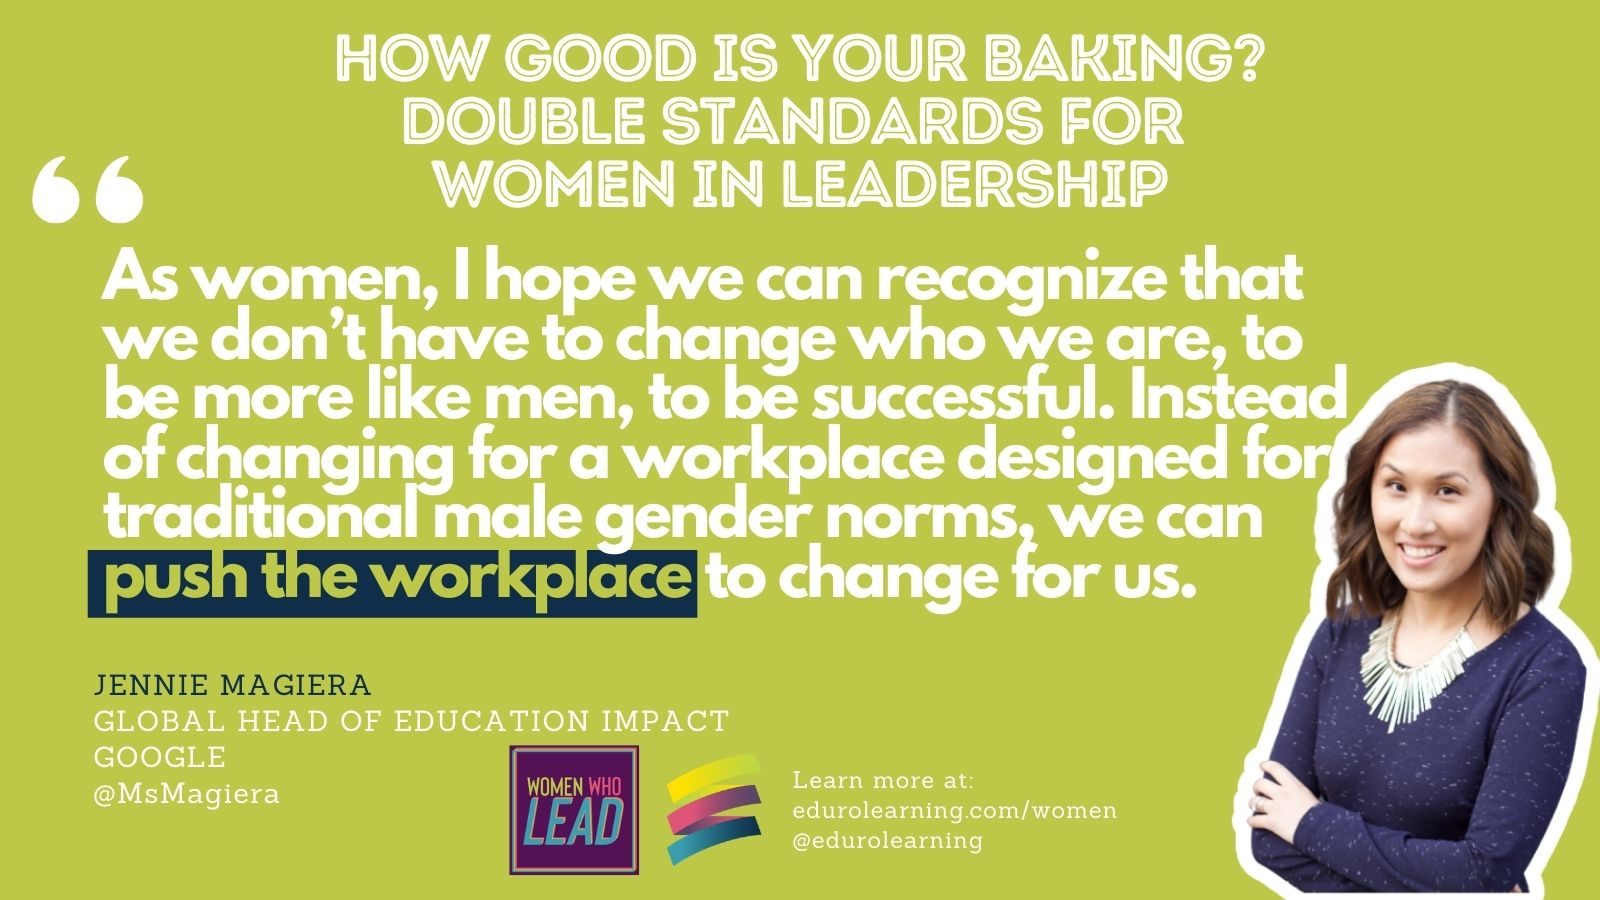 How Good Are You At Baking? Double Standards for Women in Leadership